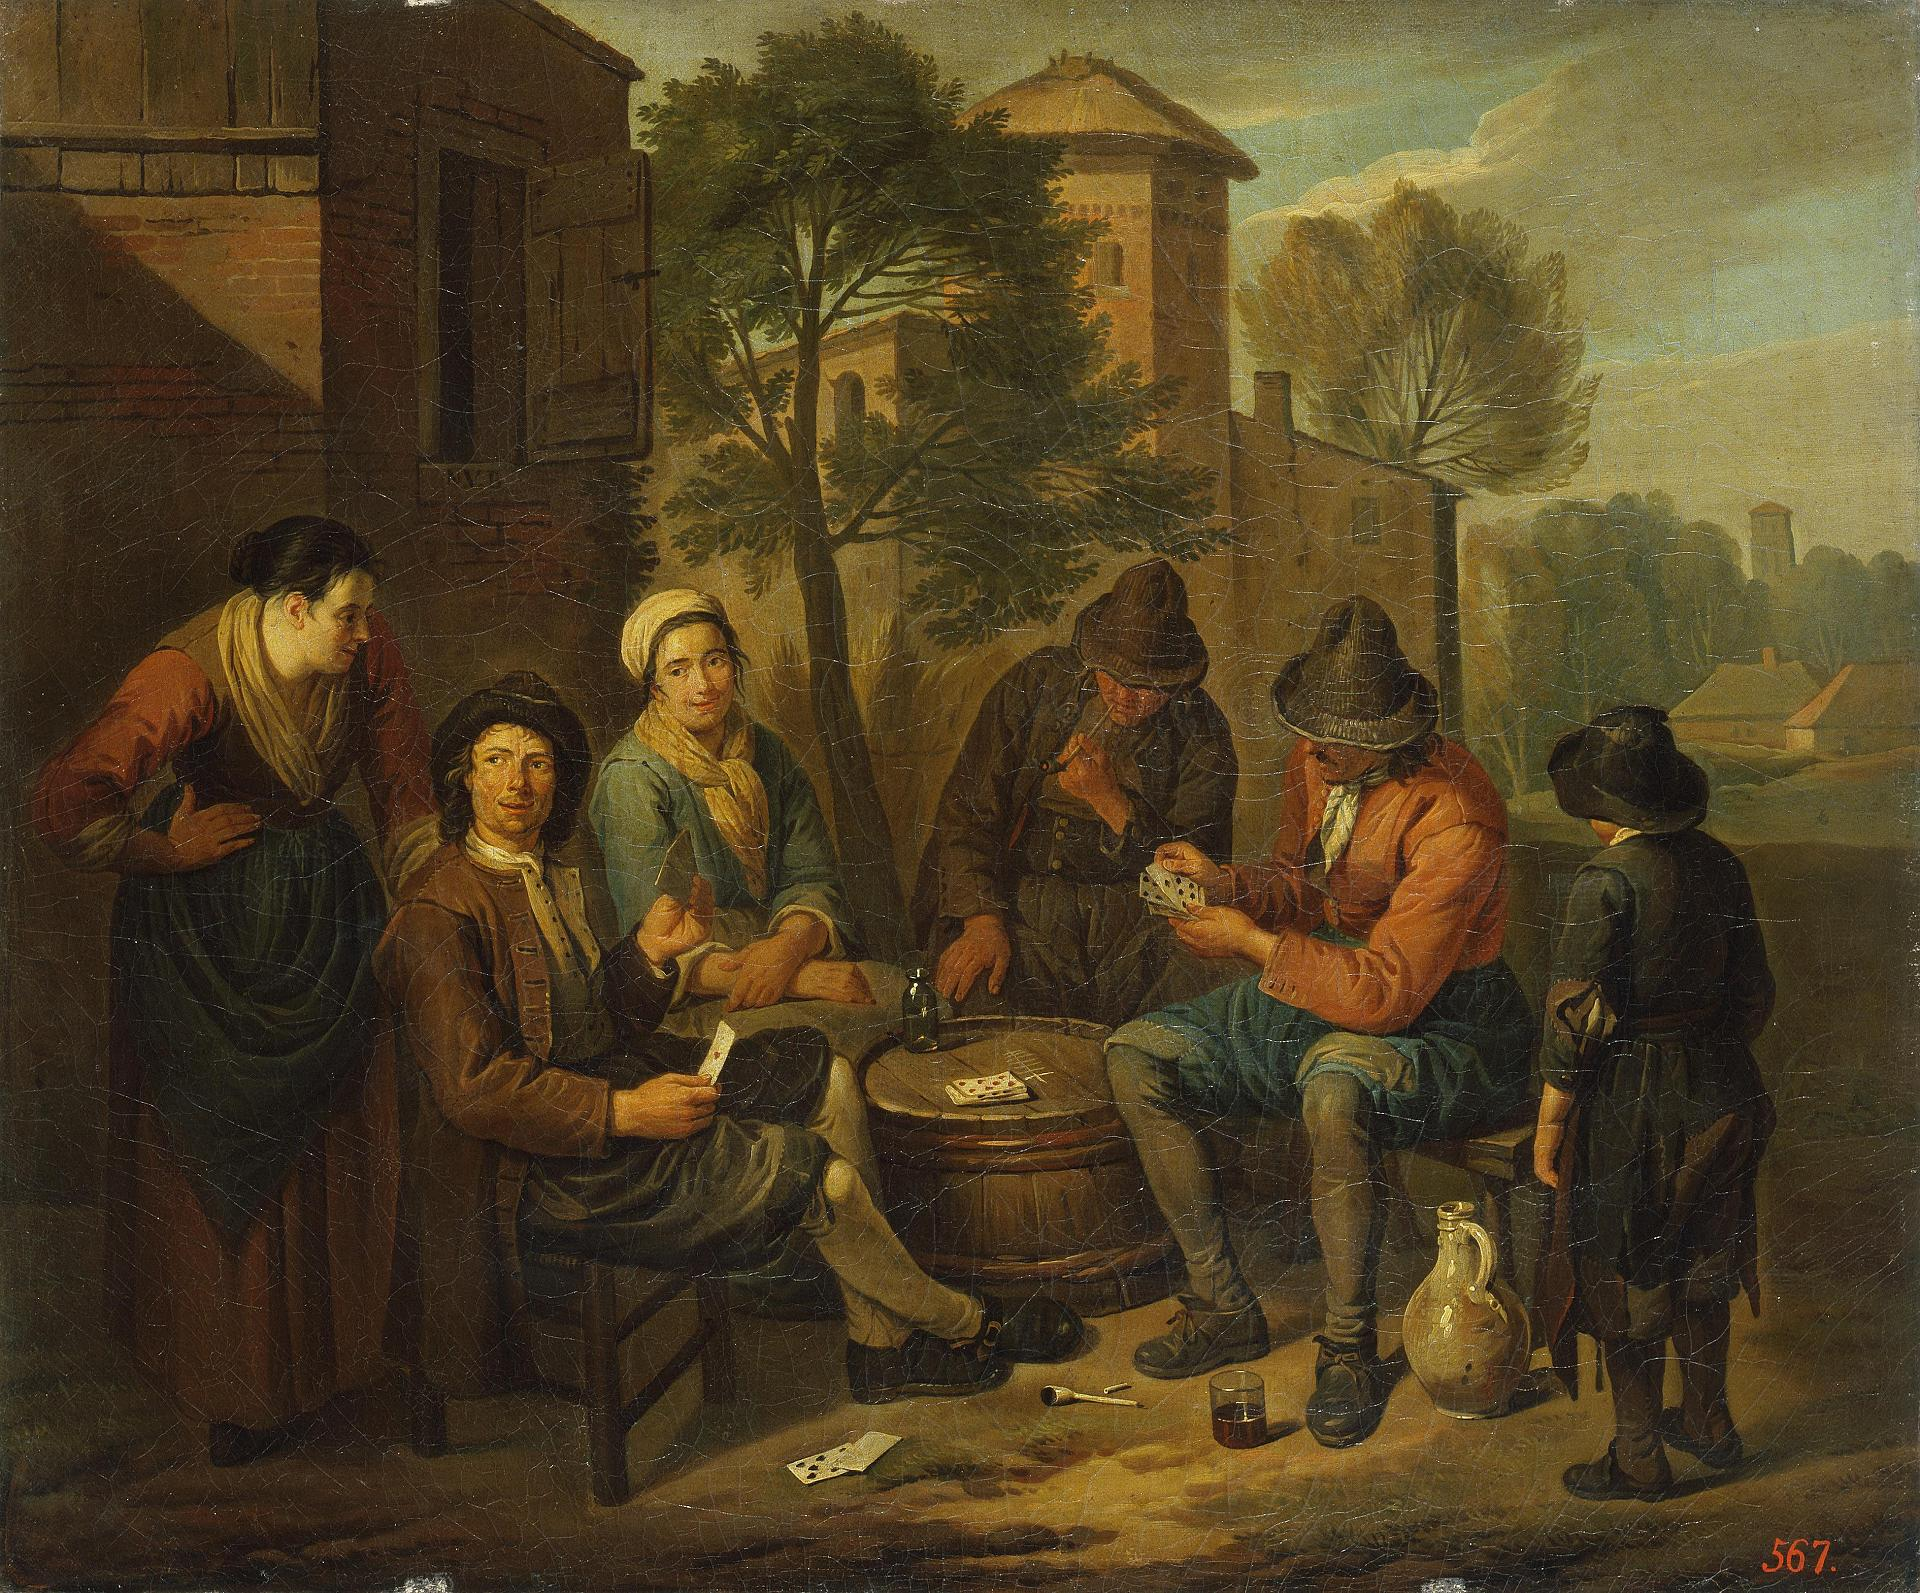 Peasants playing cards on a barrel